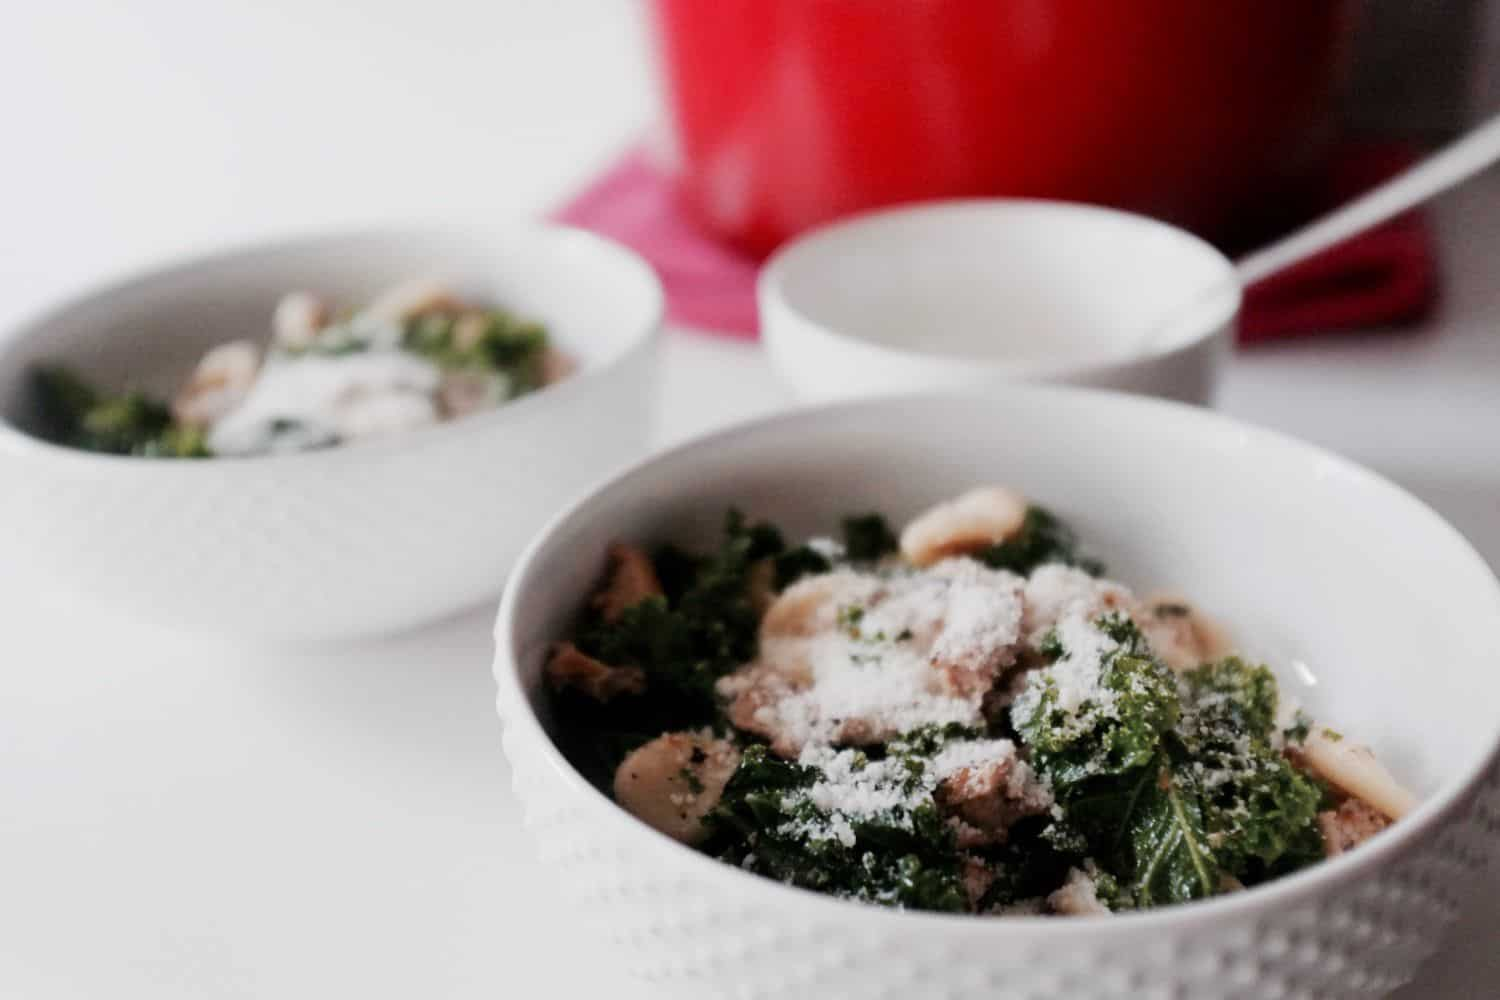 Oricchette Pasta with Kale and Ground Turkey - A versatile pasta recipe perfect for romantic dinners, dinner parties, or lunch at the office! Recipe on GoodieGodmother.com